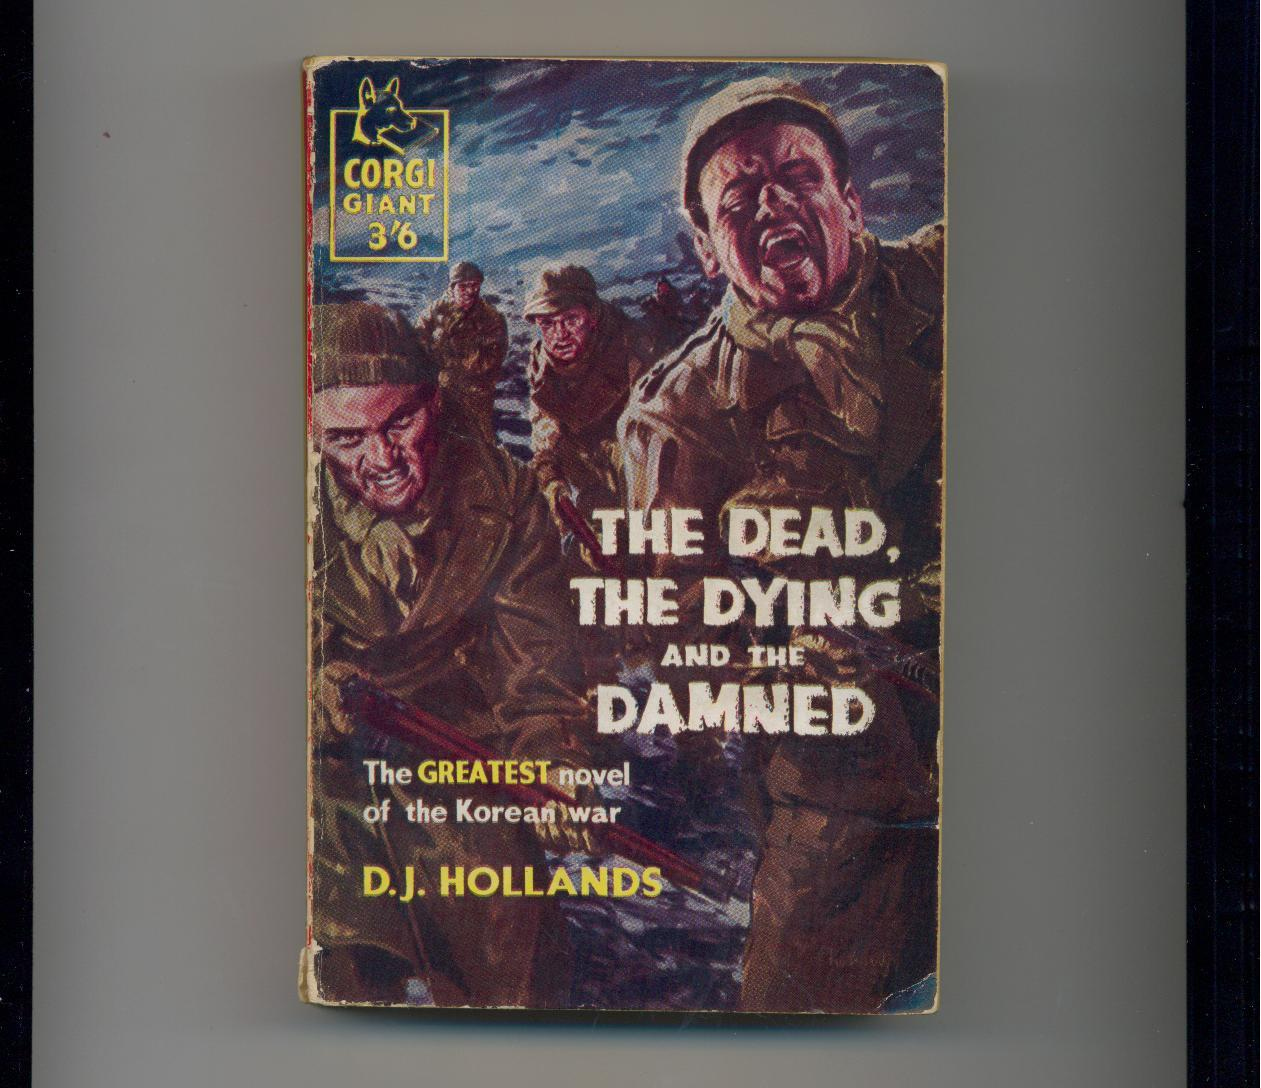 Hollands - THE DEAD, DYING & DAMNED - 1958 - Korean War